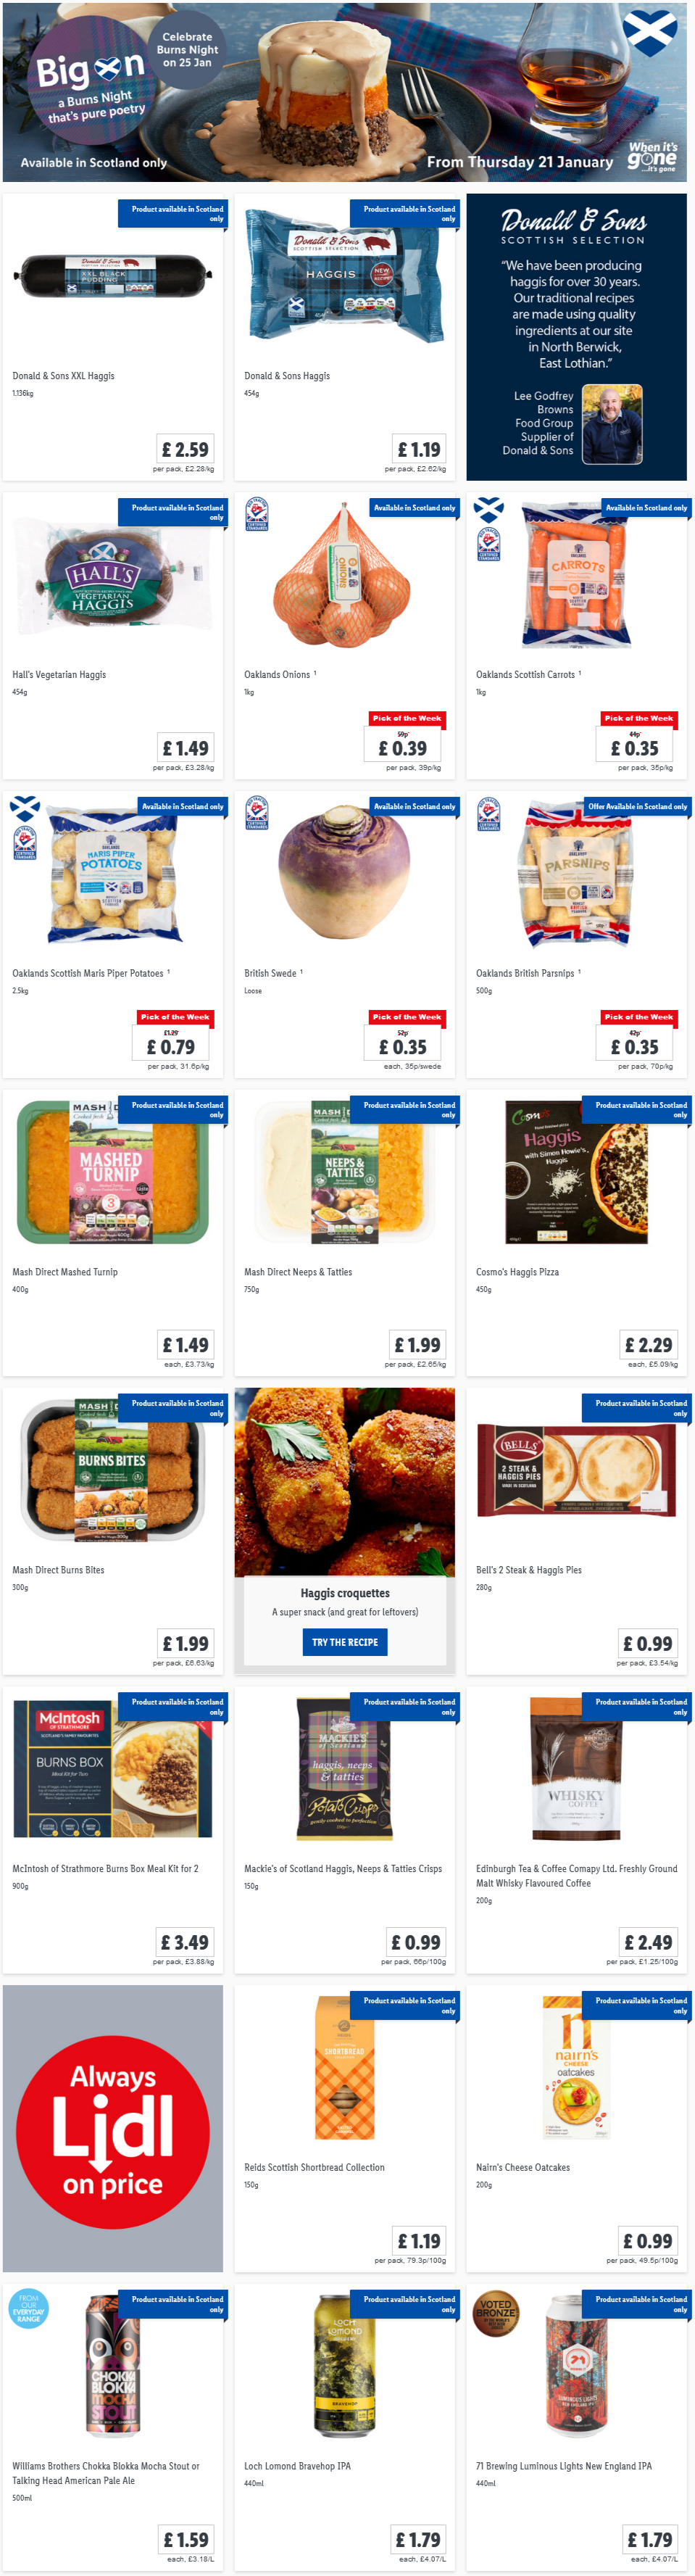 Lidl Burns Night Offers from Thursday, 21st January 2021 (Scotland Only)